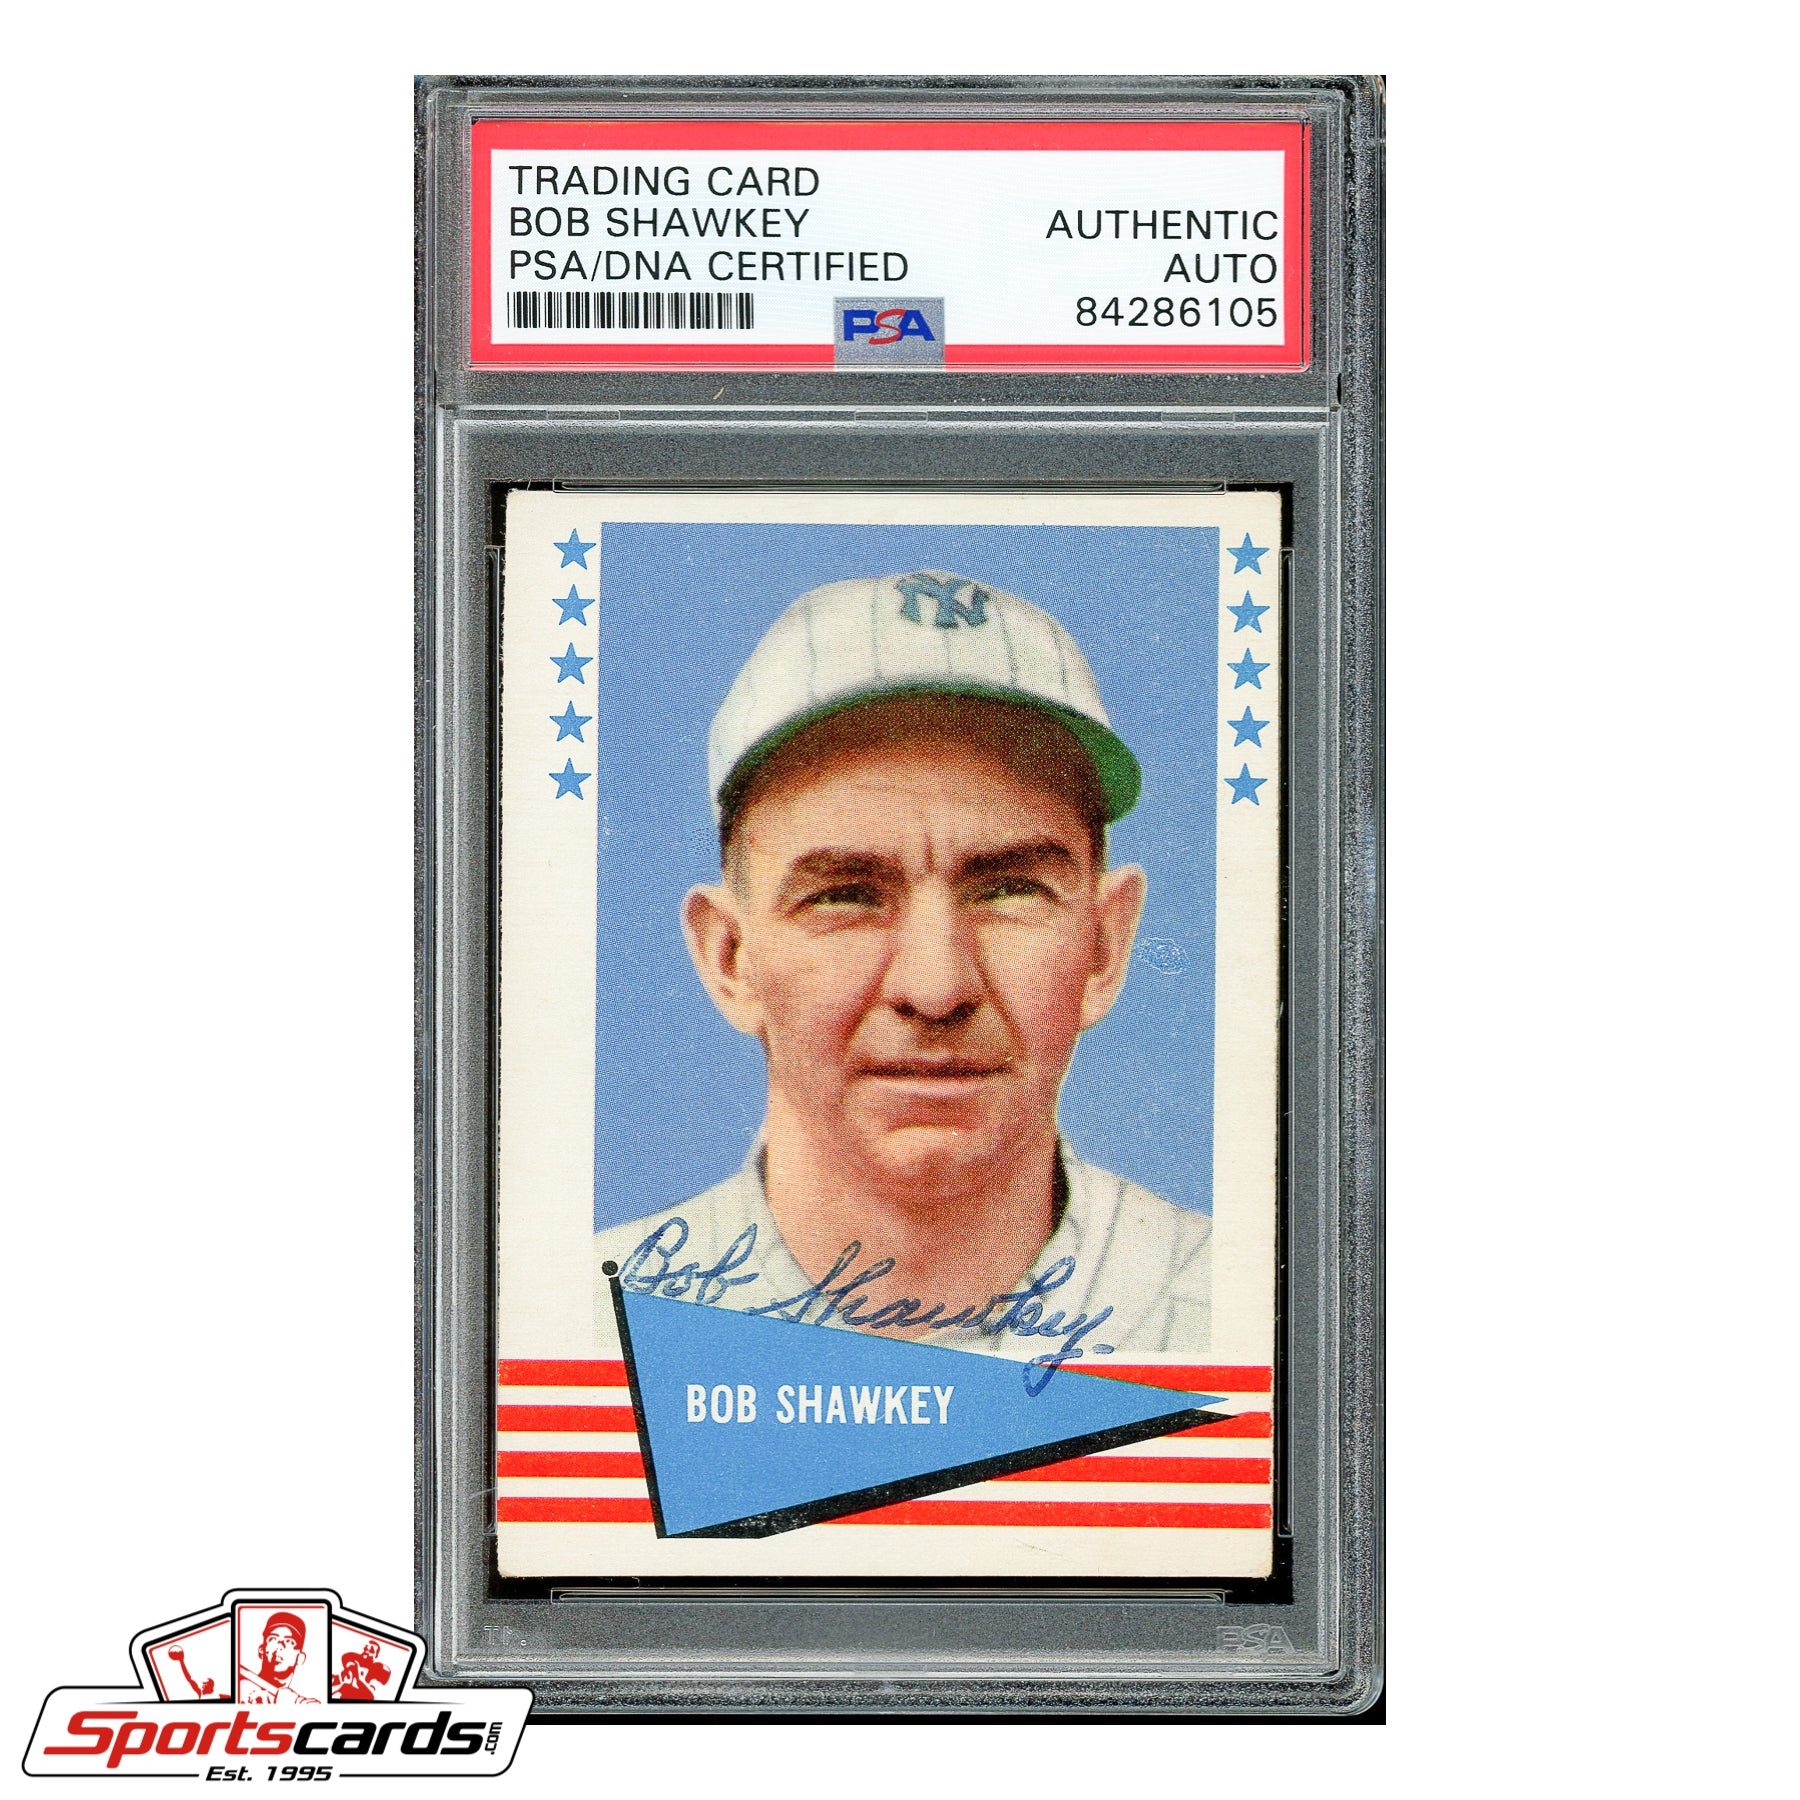 Bob Shawkey Signed Auto 1961 Fleer Card - PSA/DNA